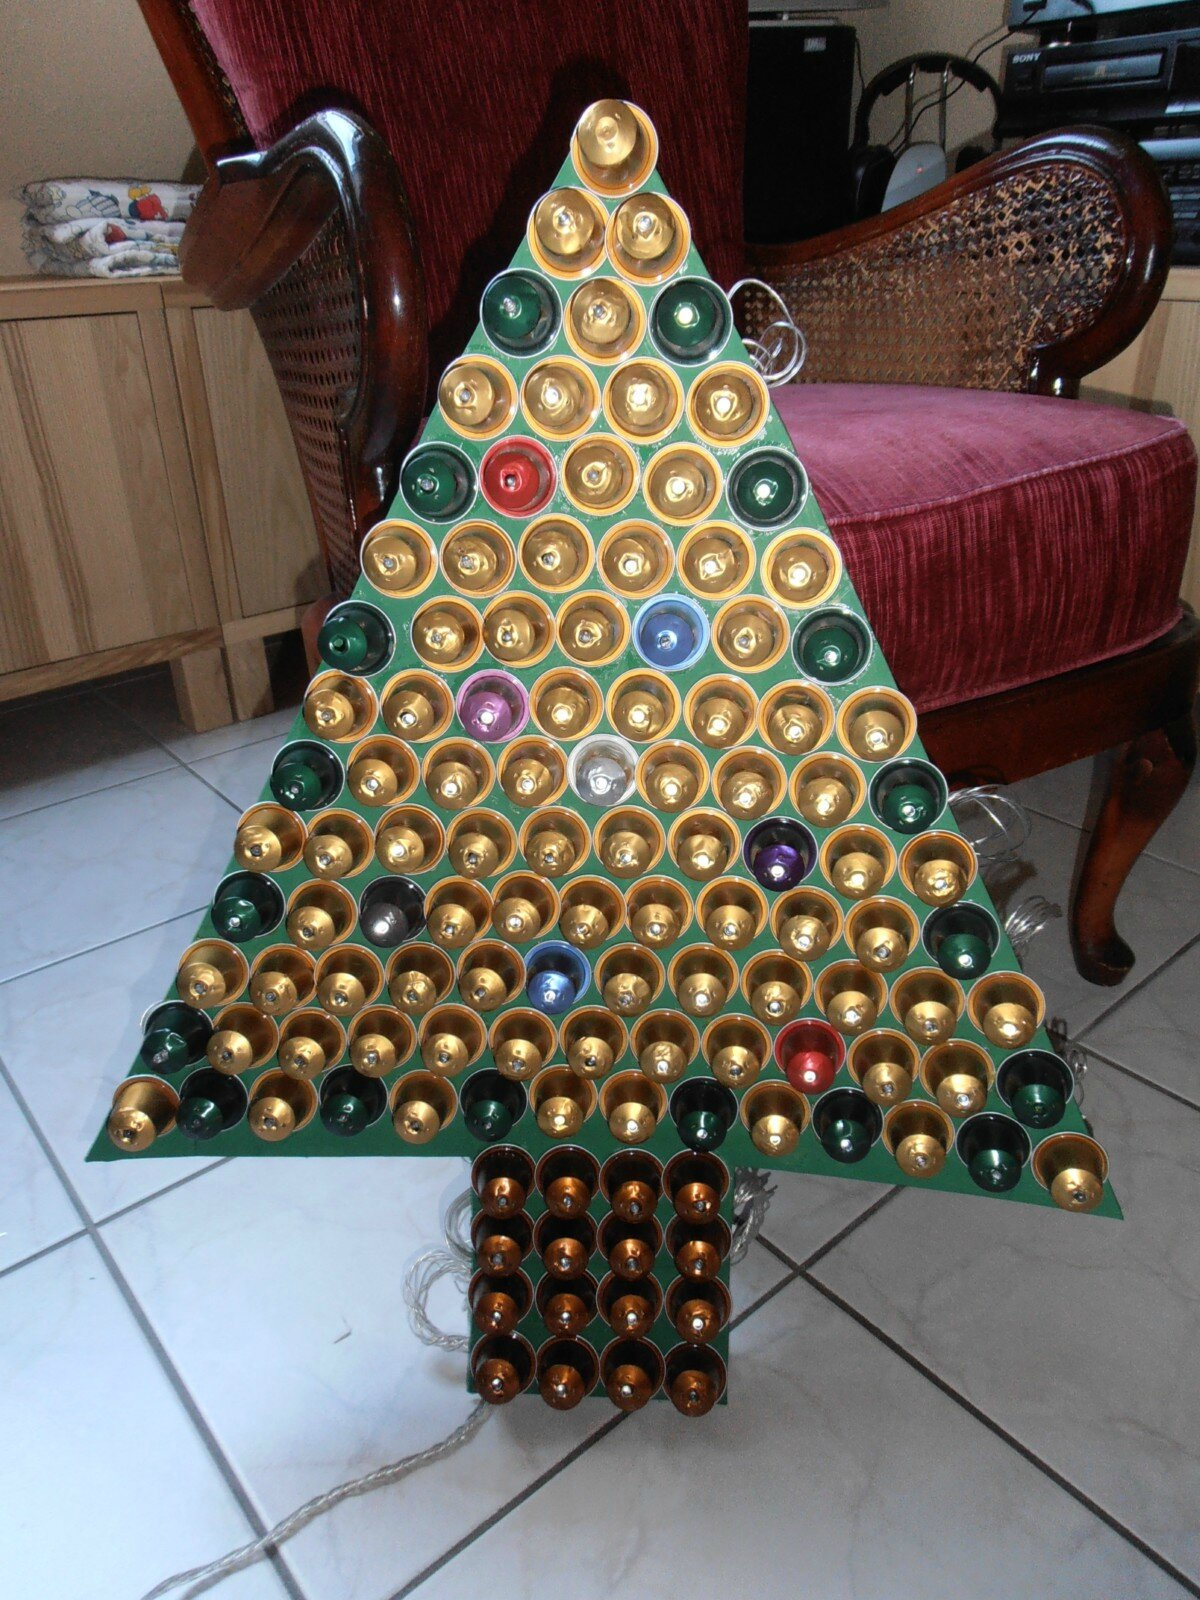 Beliebt Sapin de Noël en capsules de Nespresso - Brico-déco-couture and co IV71